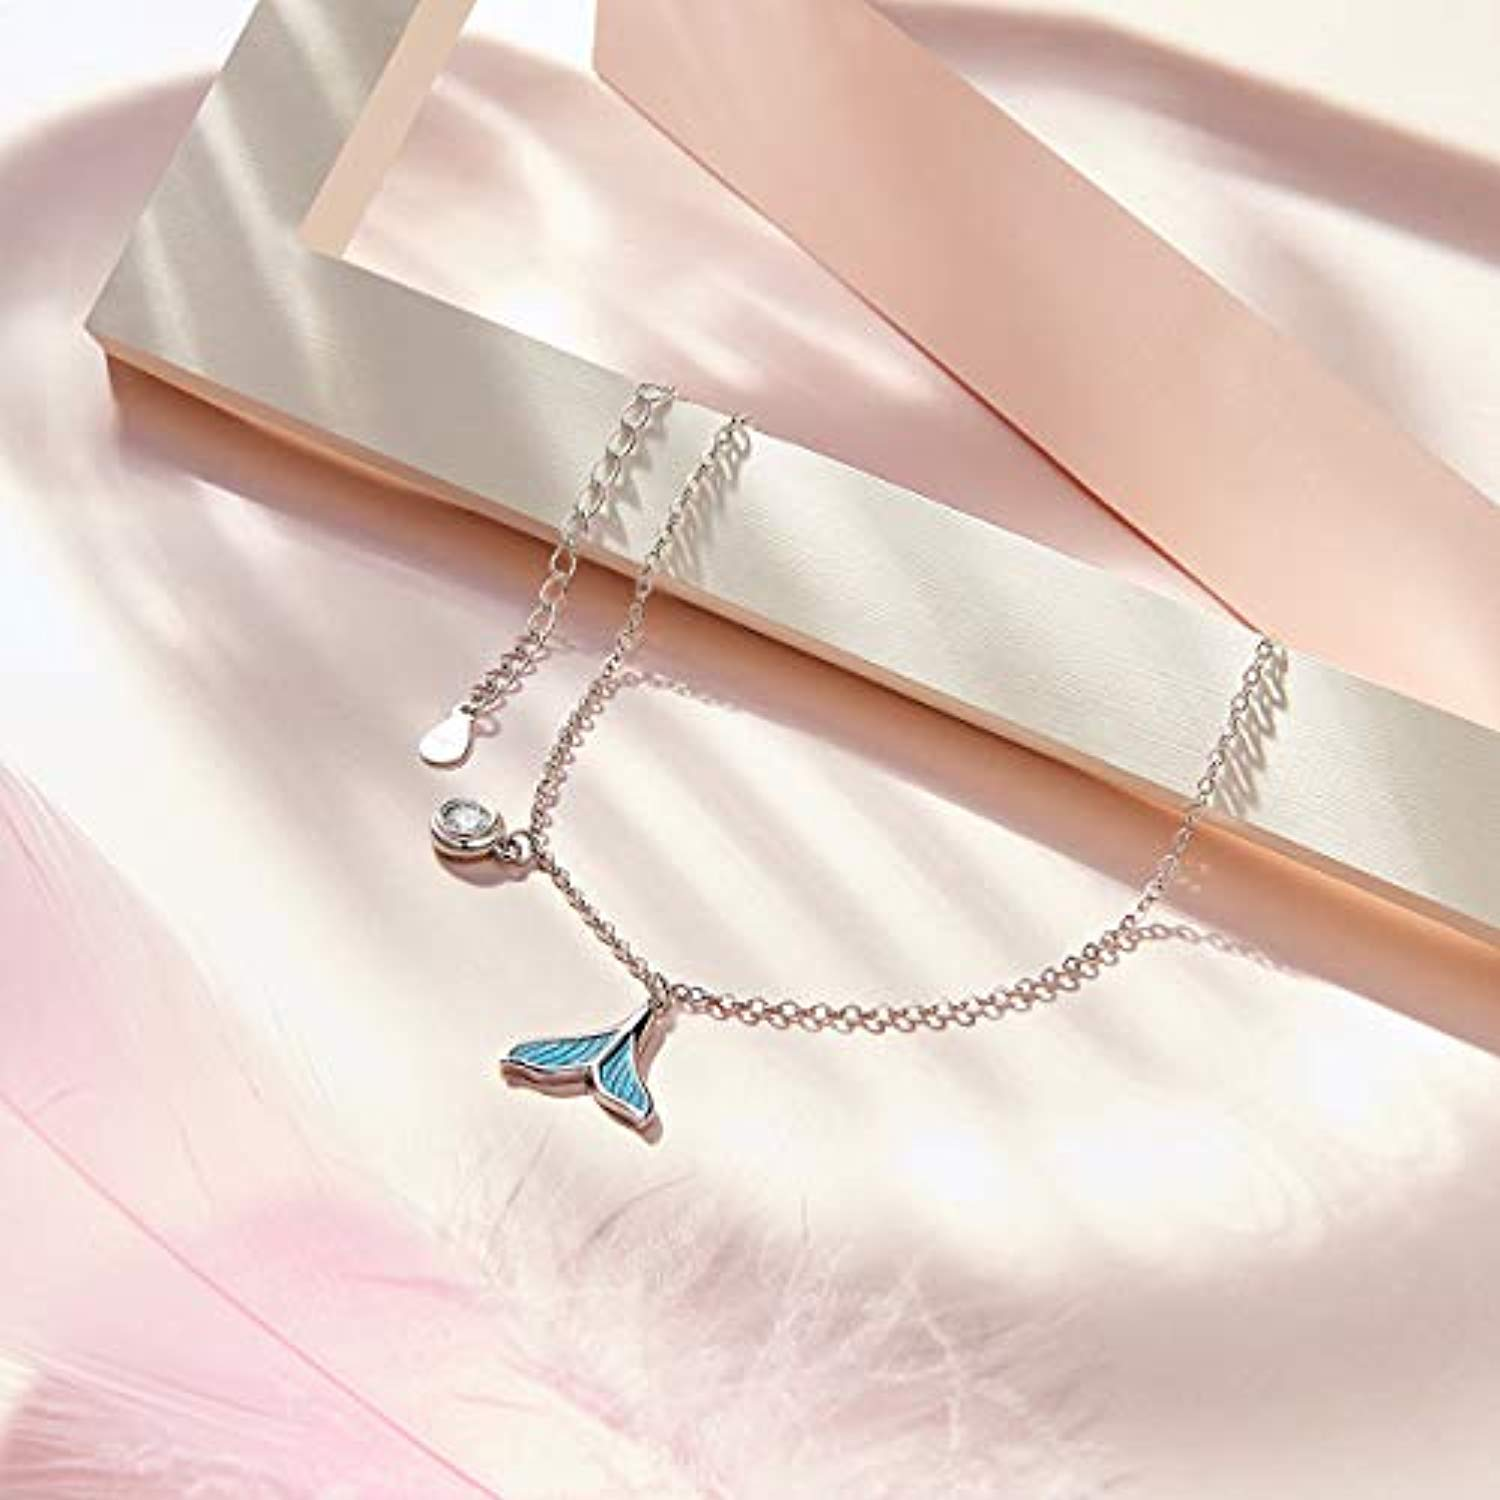 Mermaid Tail Anklet 925 Sterling Silver plated Platinum+Epoxy Anklet Dangle Adjustable Foot Chain for Women